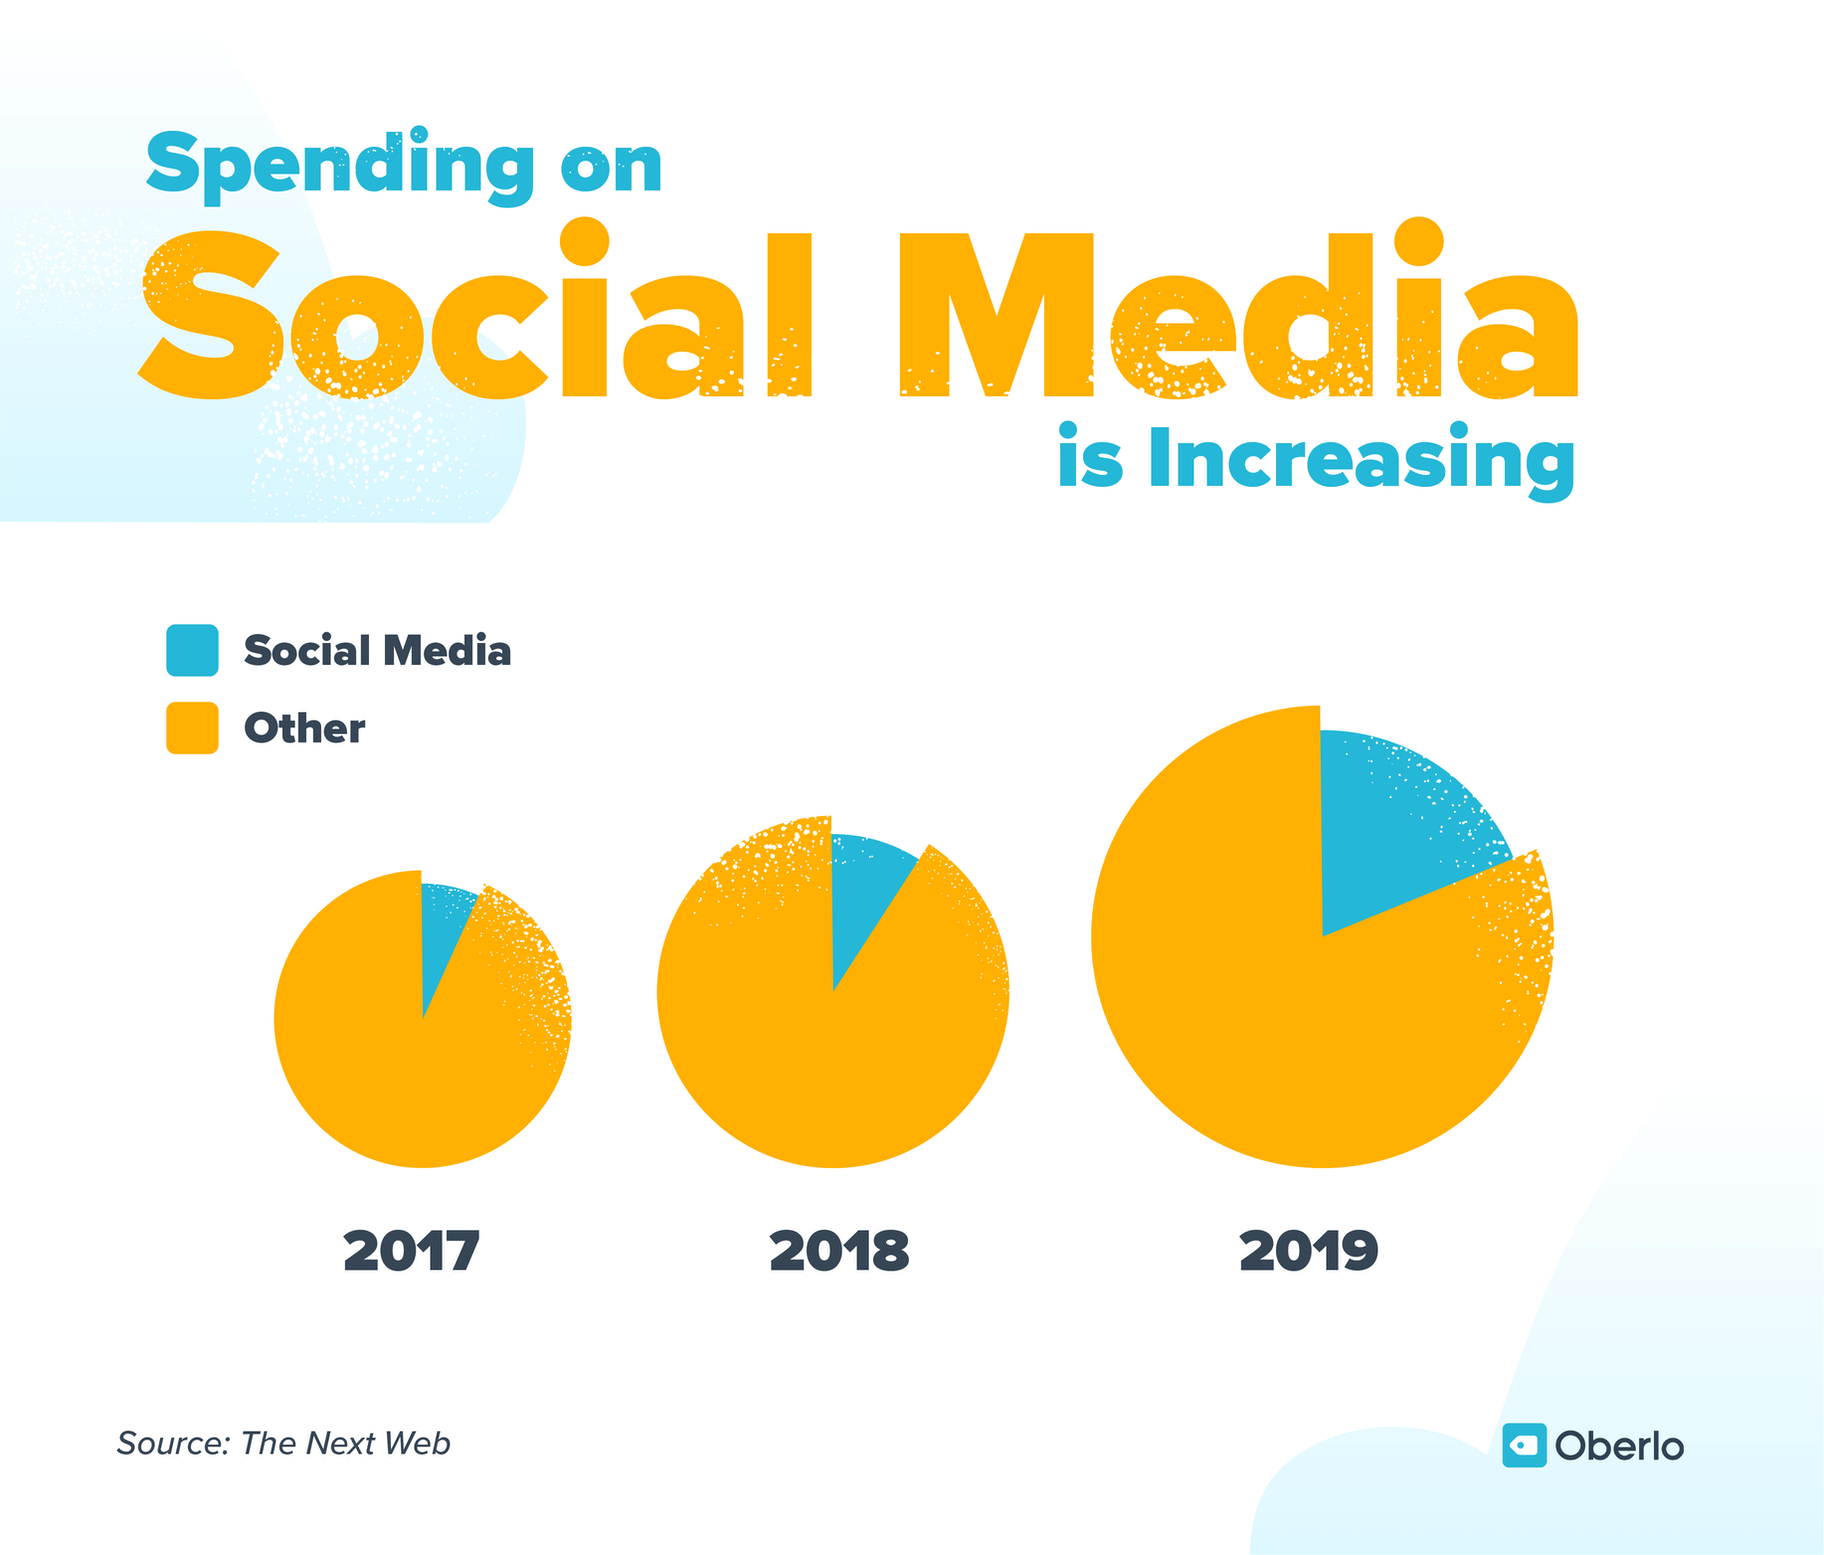 Social media marketing spending is increasing every year